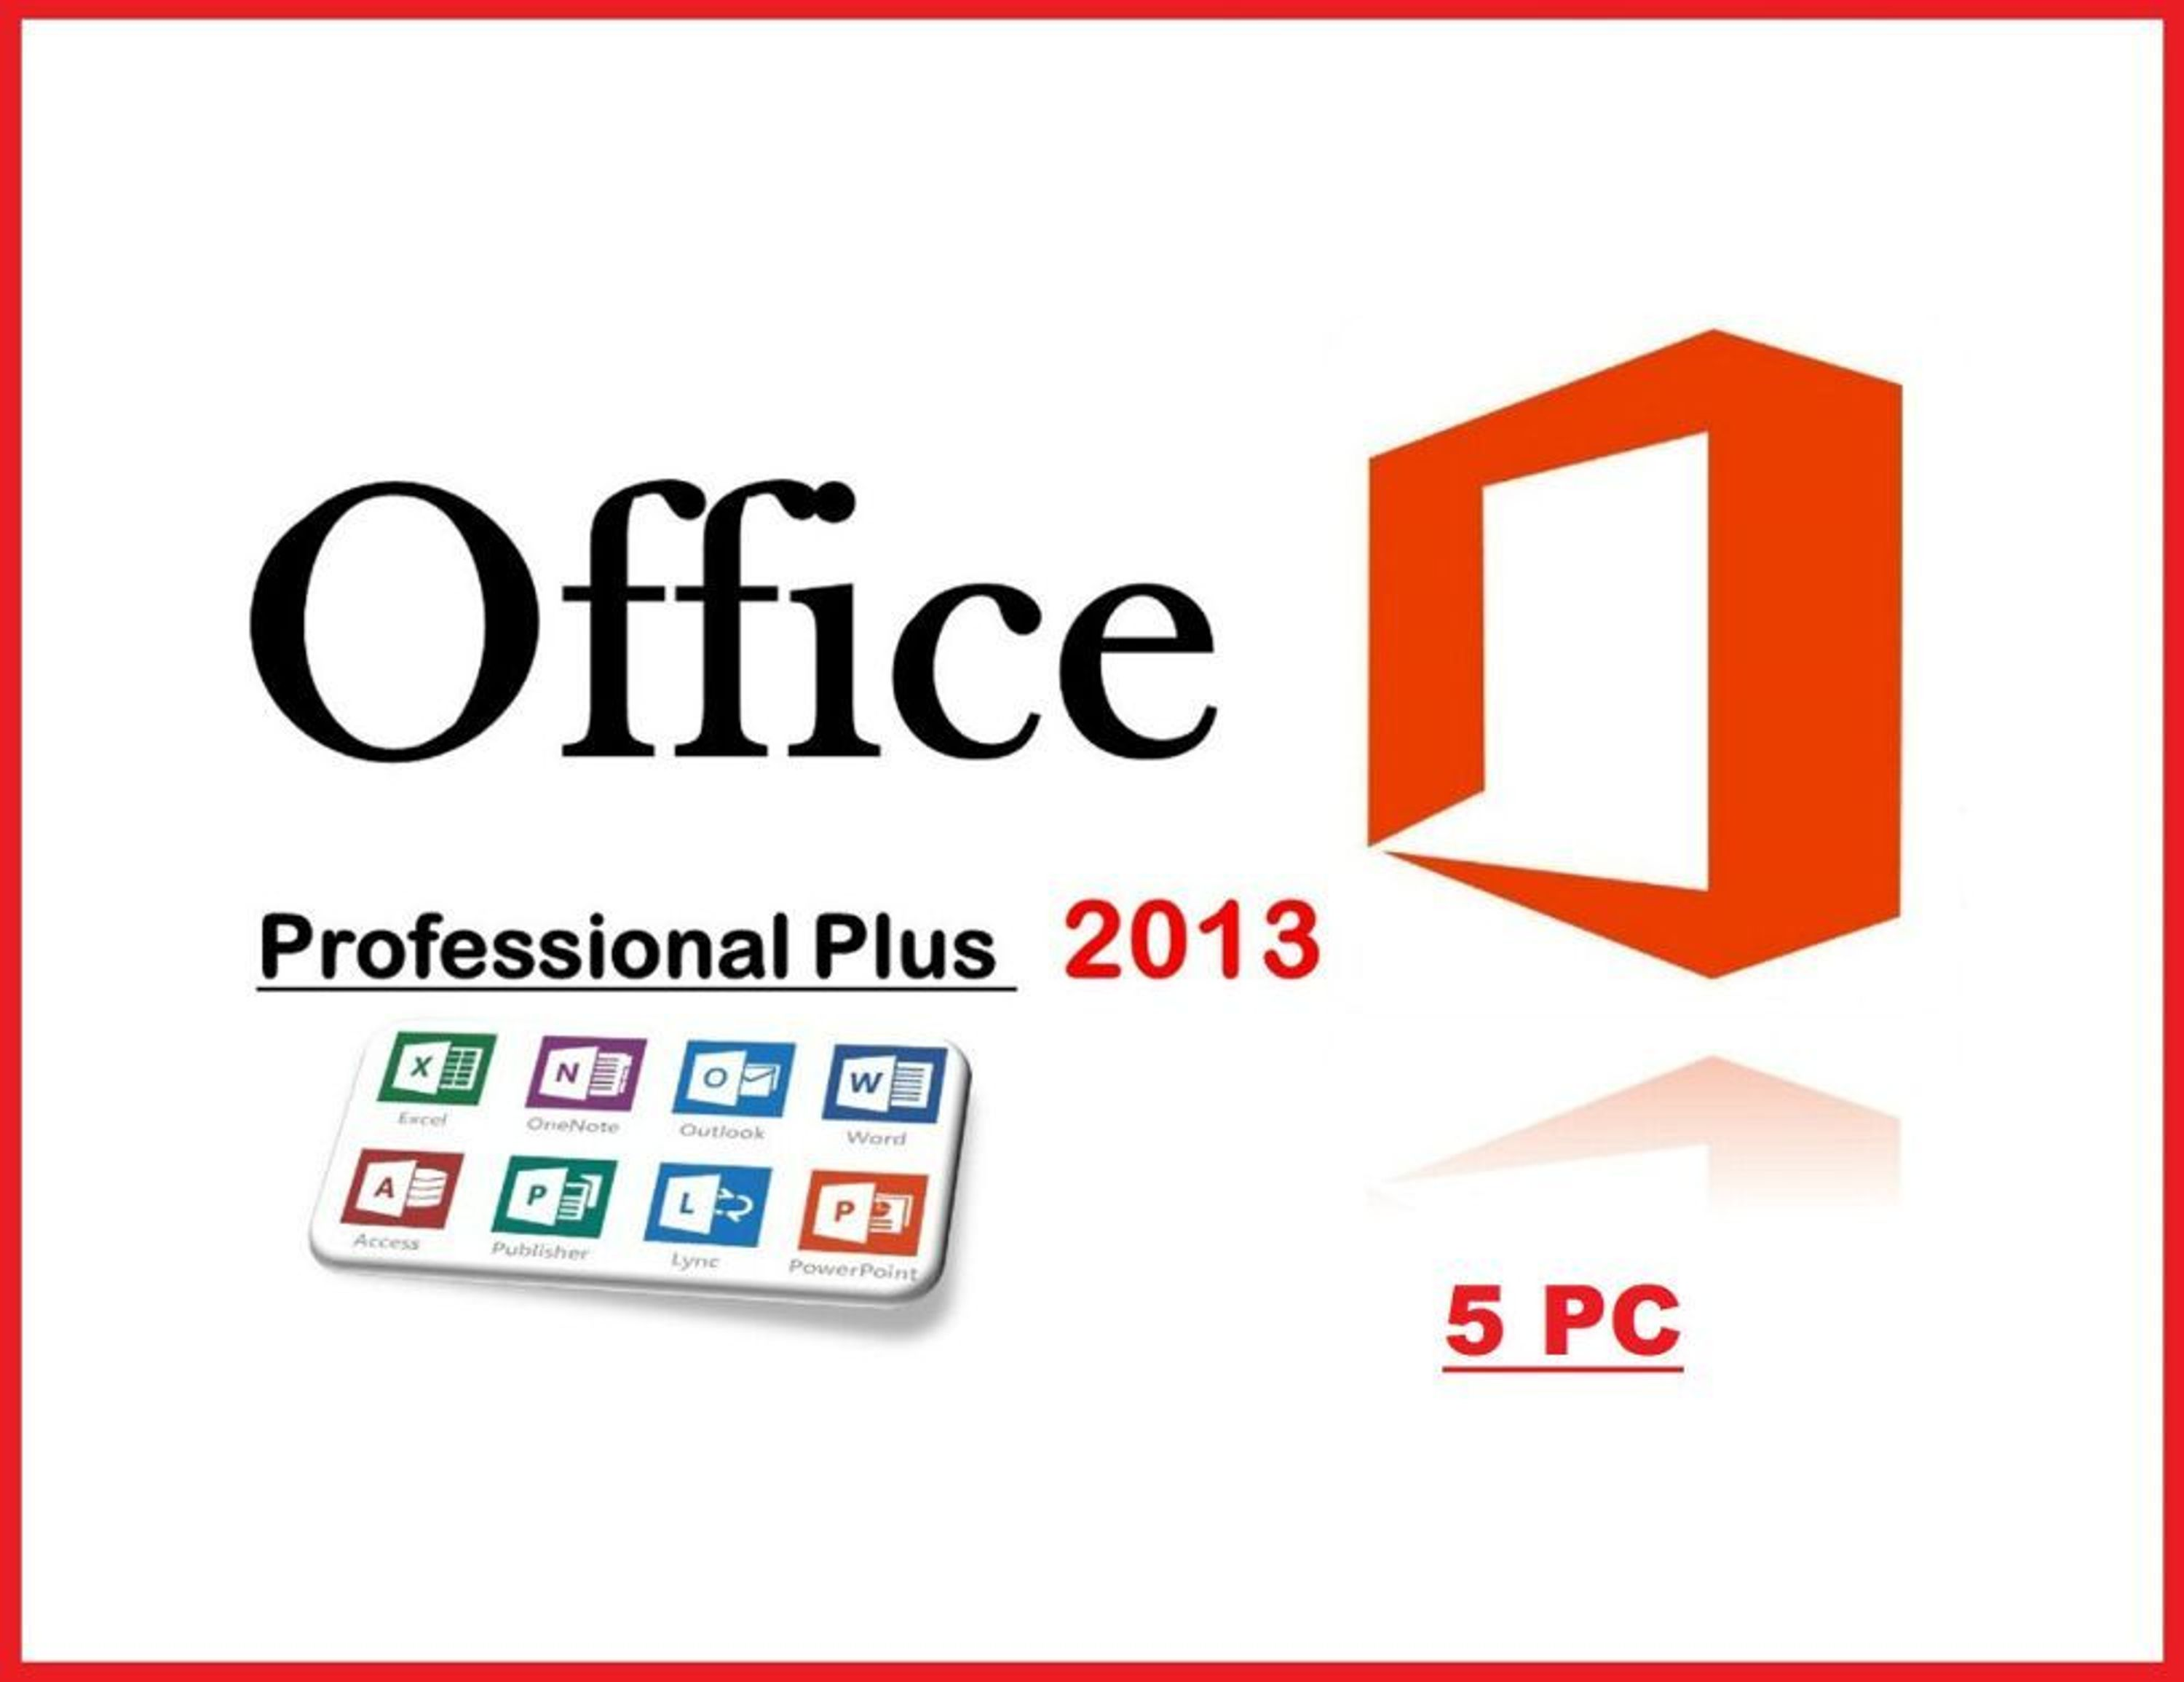 microsoft office 2013 professional plus 5 pc. Black Bedroom Furniture Sets. Home Design Ideas